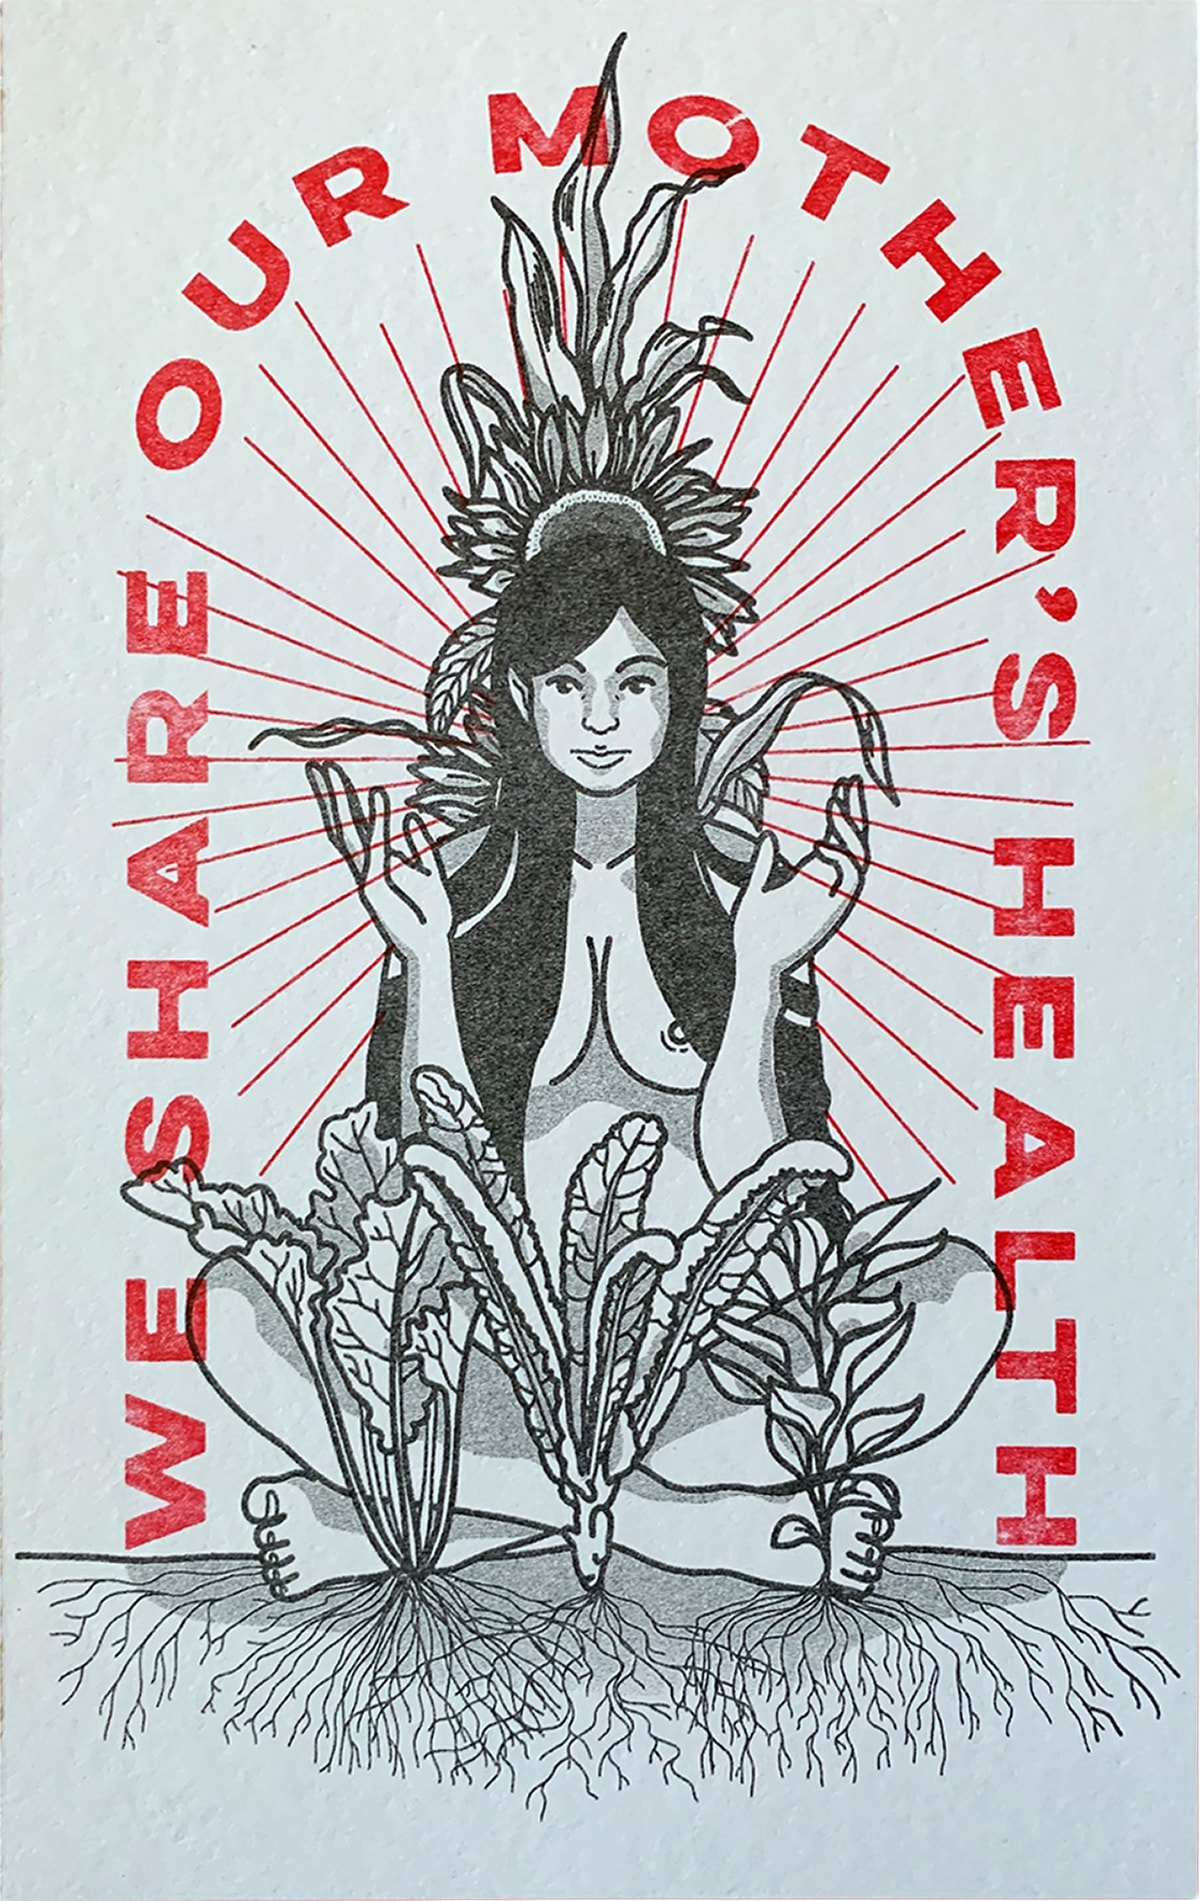 We Share Our Mother's Health, a print by Erica Federhen .